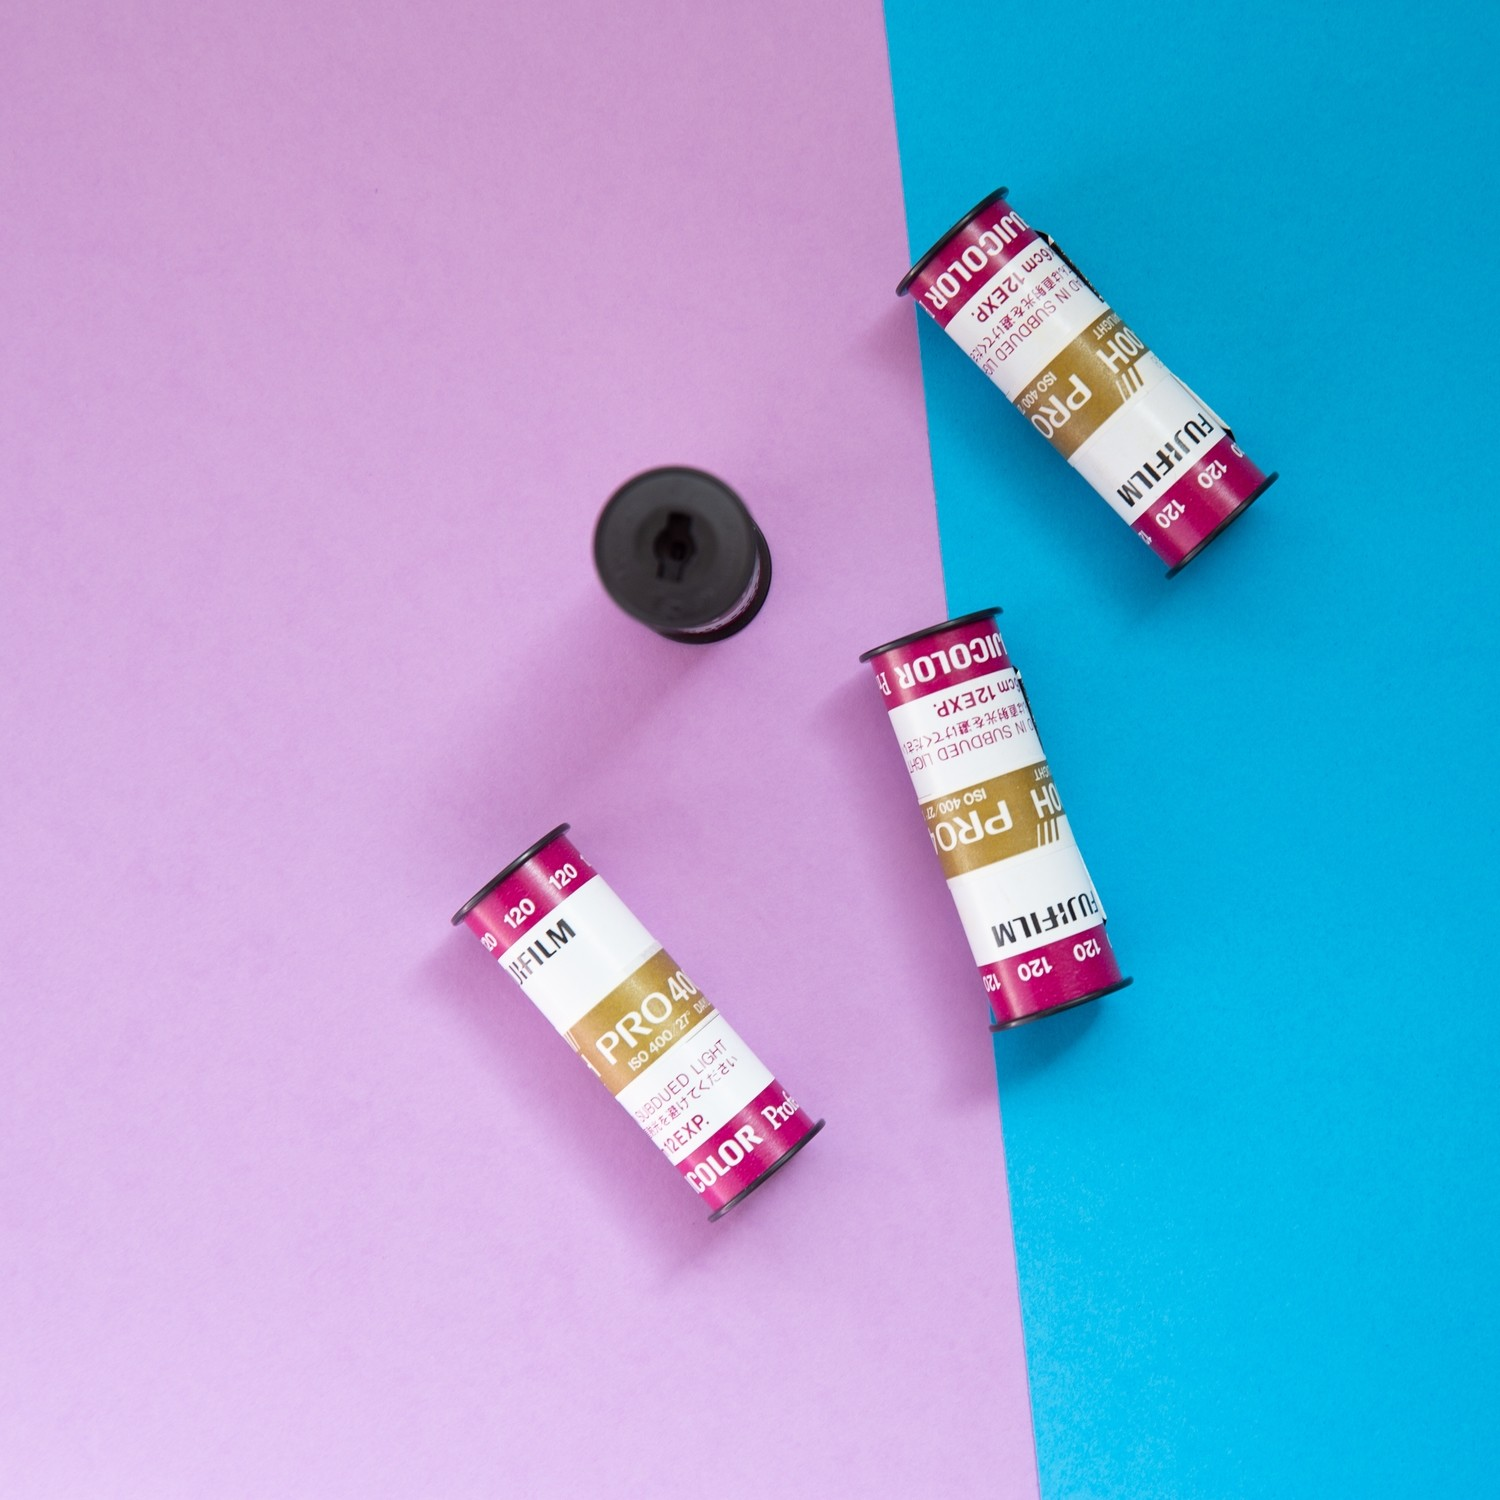 Fuji 400H 120 - From $7.40 a Roll (while supplies last)!